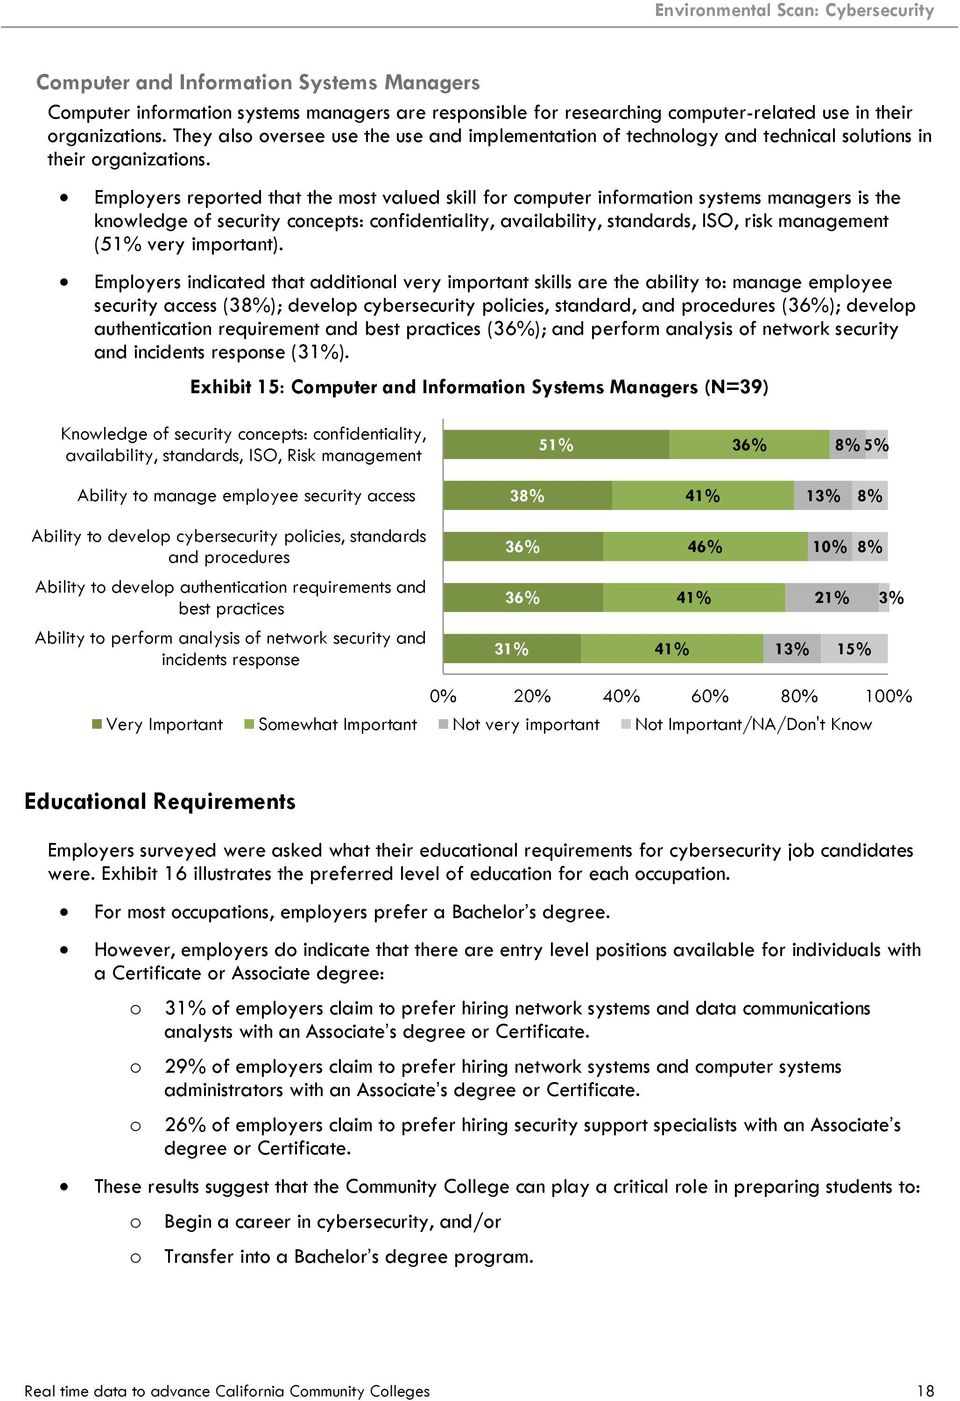 Employers reported that the most valued skill for computer information systems managers is the knowledge of security concepts: confidentiality, availability, standards, ISO, risk management (51% very